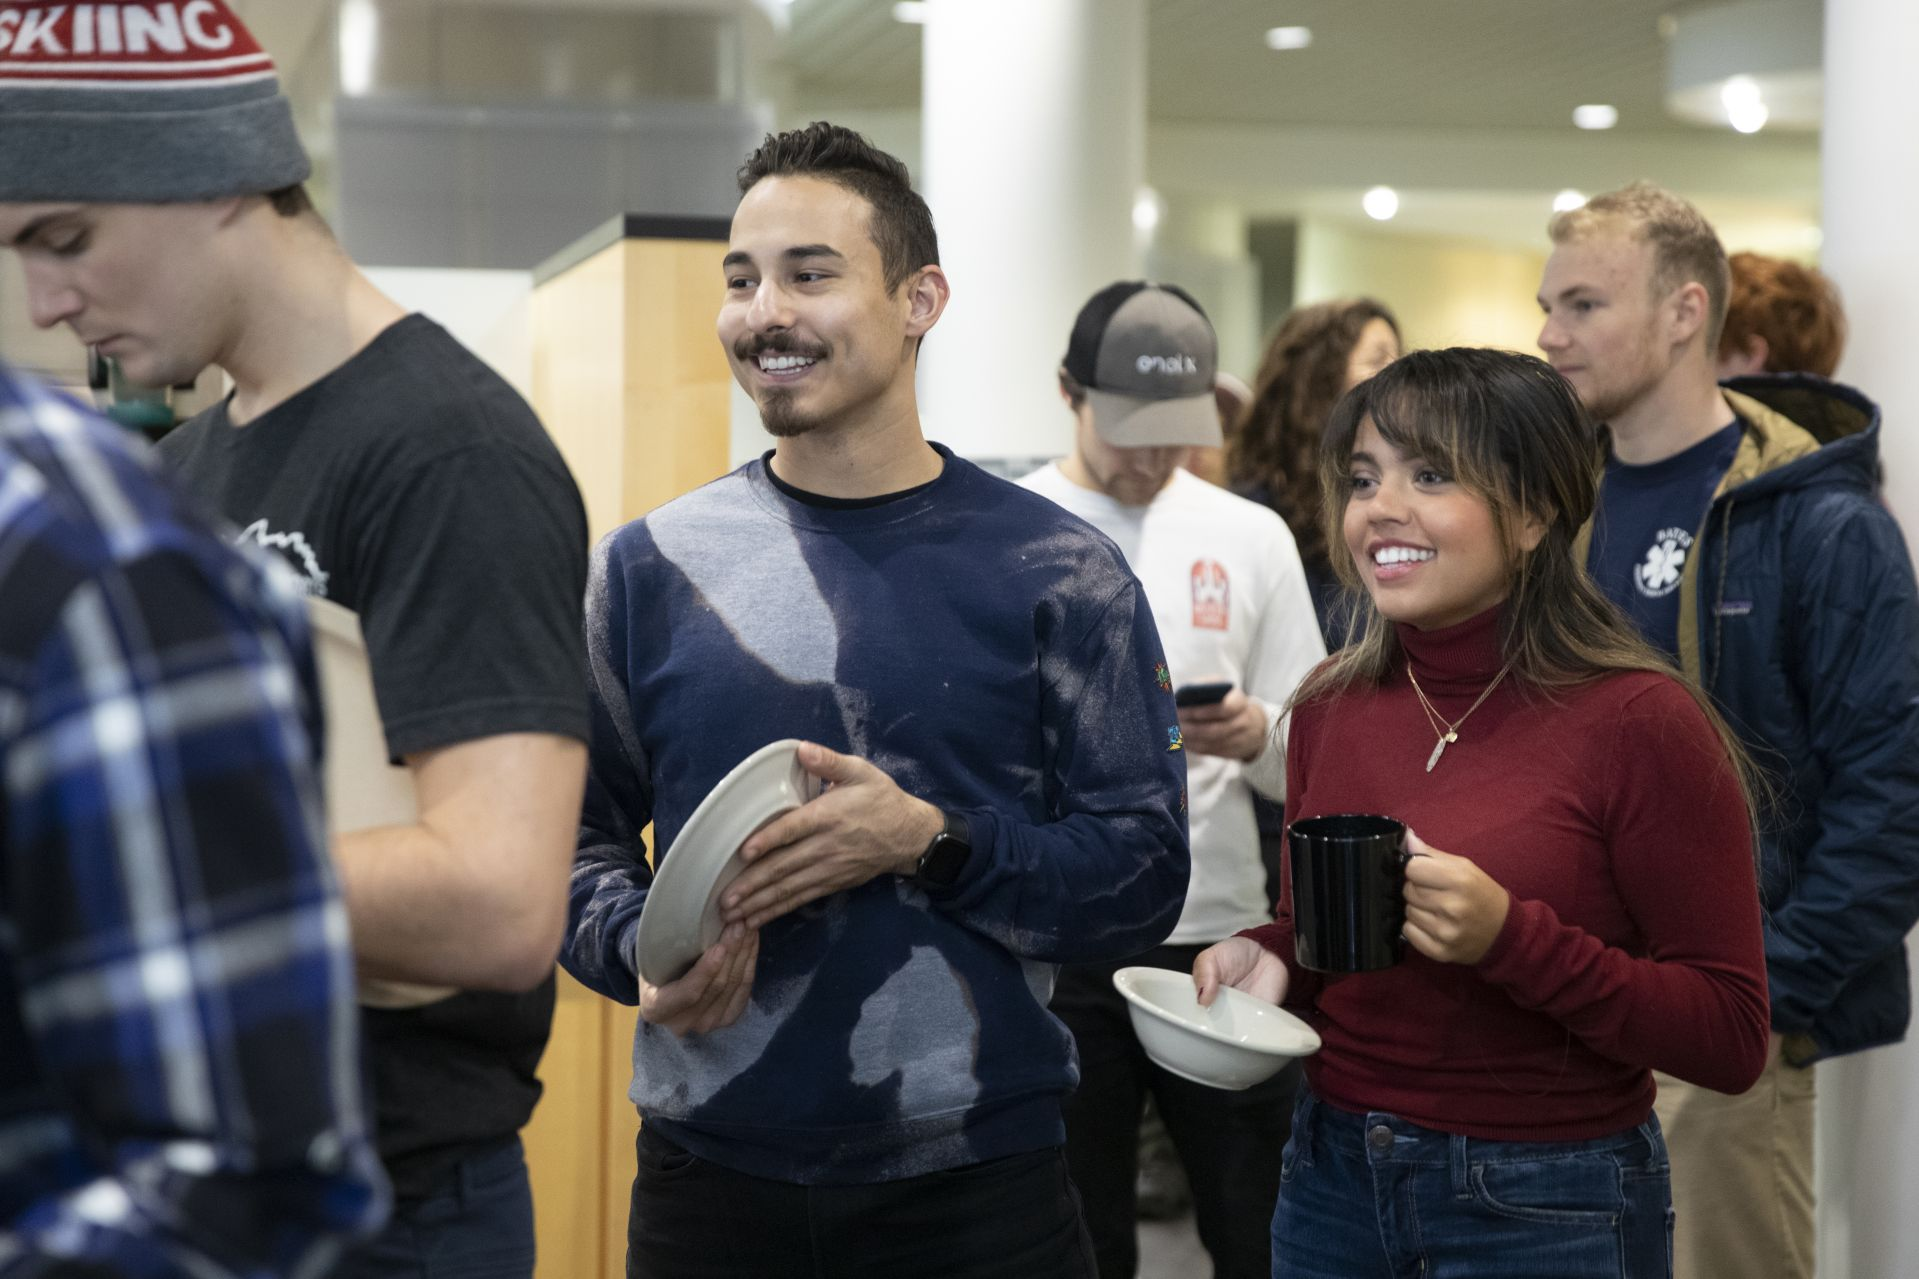 Andrew Garcia-Bou '20 of Eastchester, N.Y., and Ke'ala Brosseau '20 of Burlington, Vt., have lunch in Commons and display their nutritional choices before chowing down.